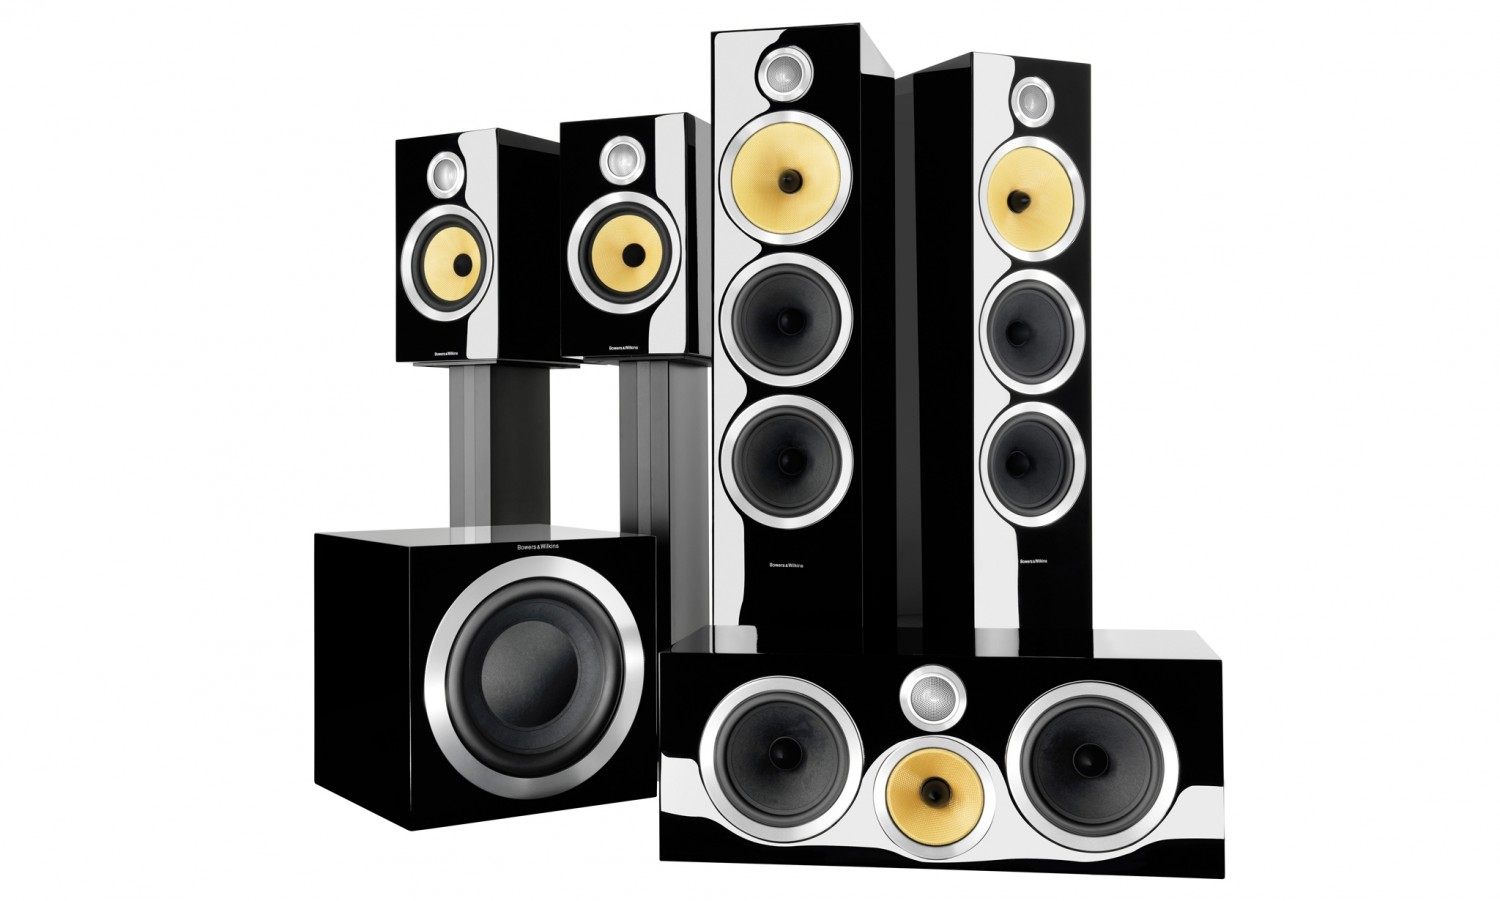 test lautsprecher surround b w bowers wilkins cm9 s2. Black Bedroom Furniture Sets. Home Design Ideas